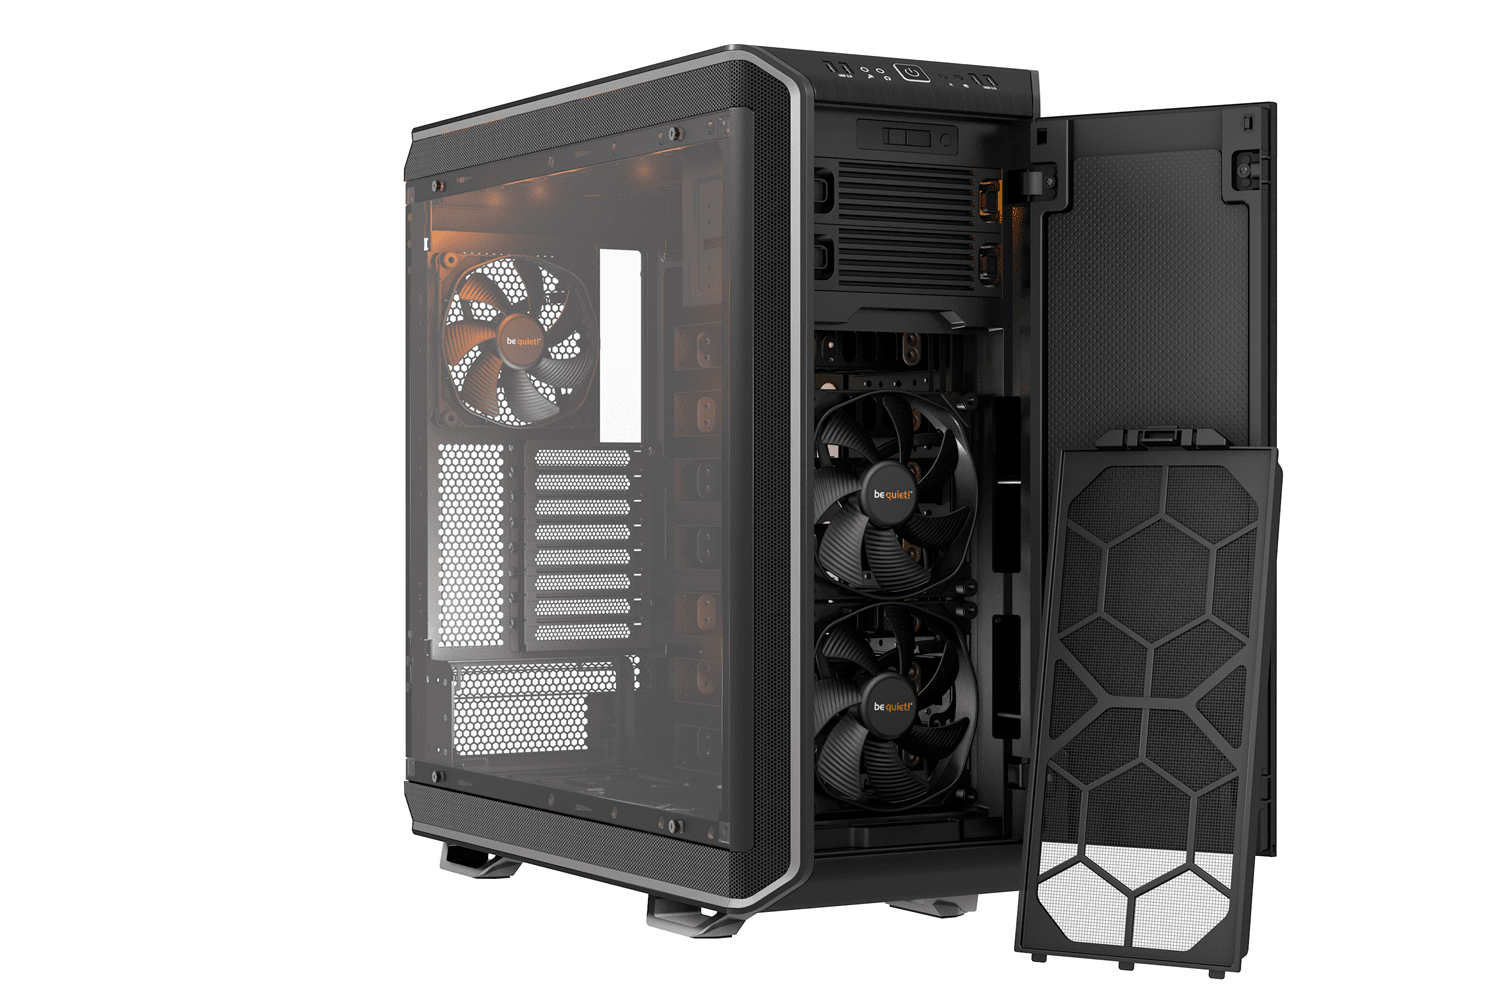 Be Quiet Dark Base Pro 900 Silver Xl Atx Full Tower